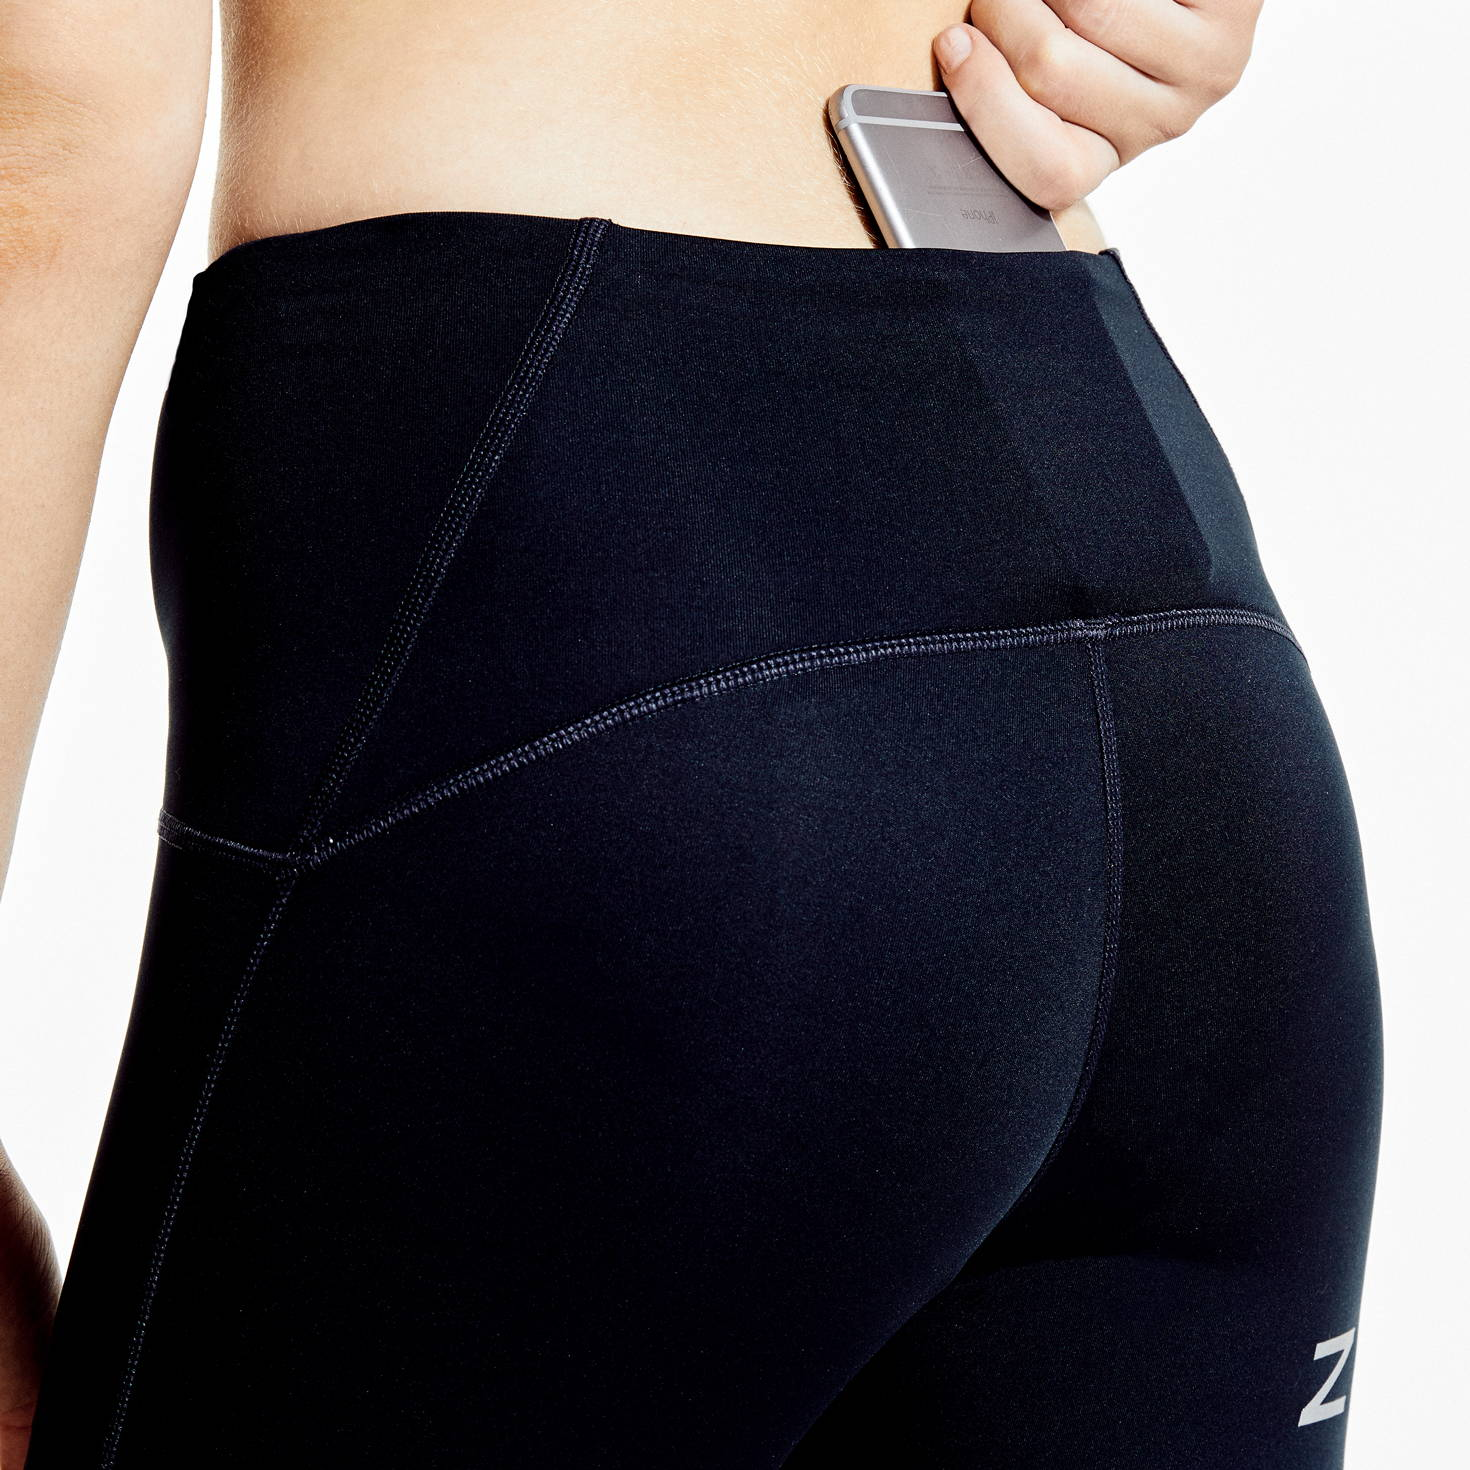 Womens-Reflective Silver-Performance-Tight-Pocket